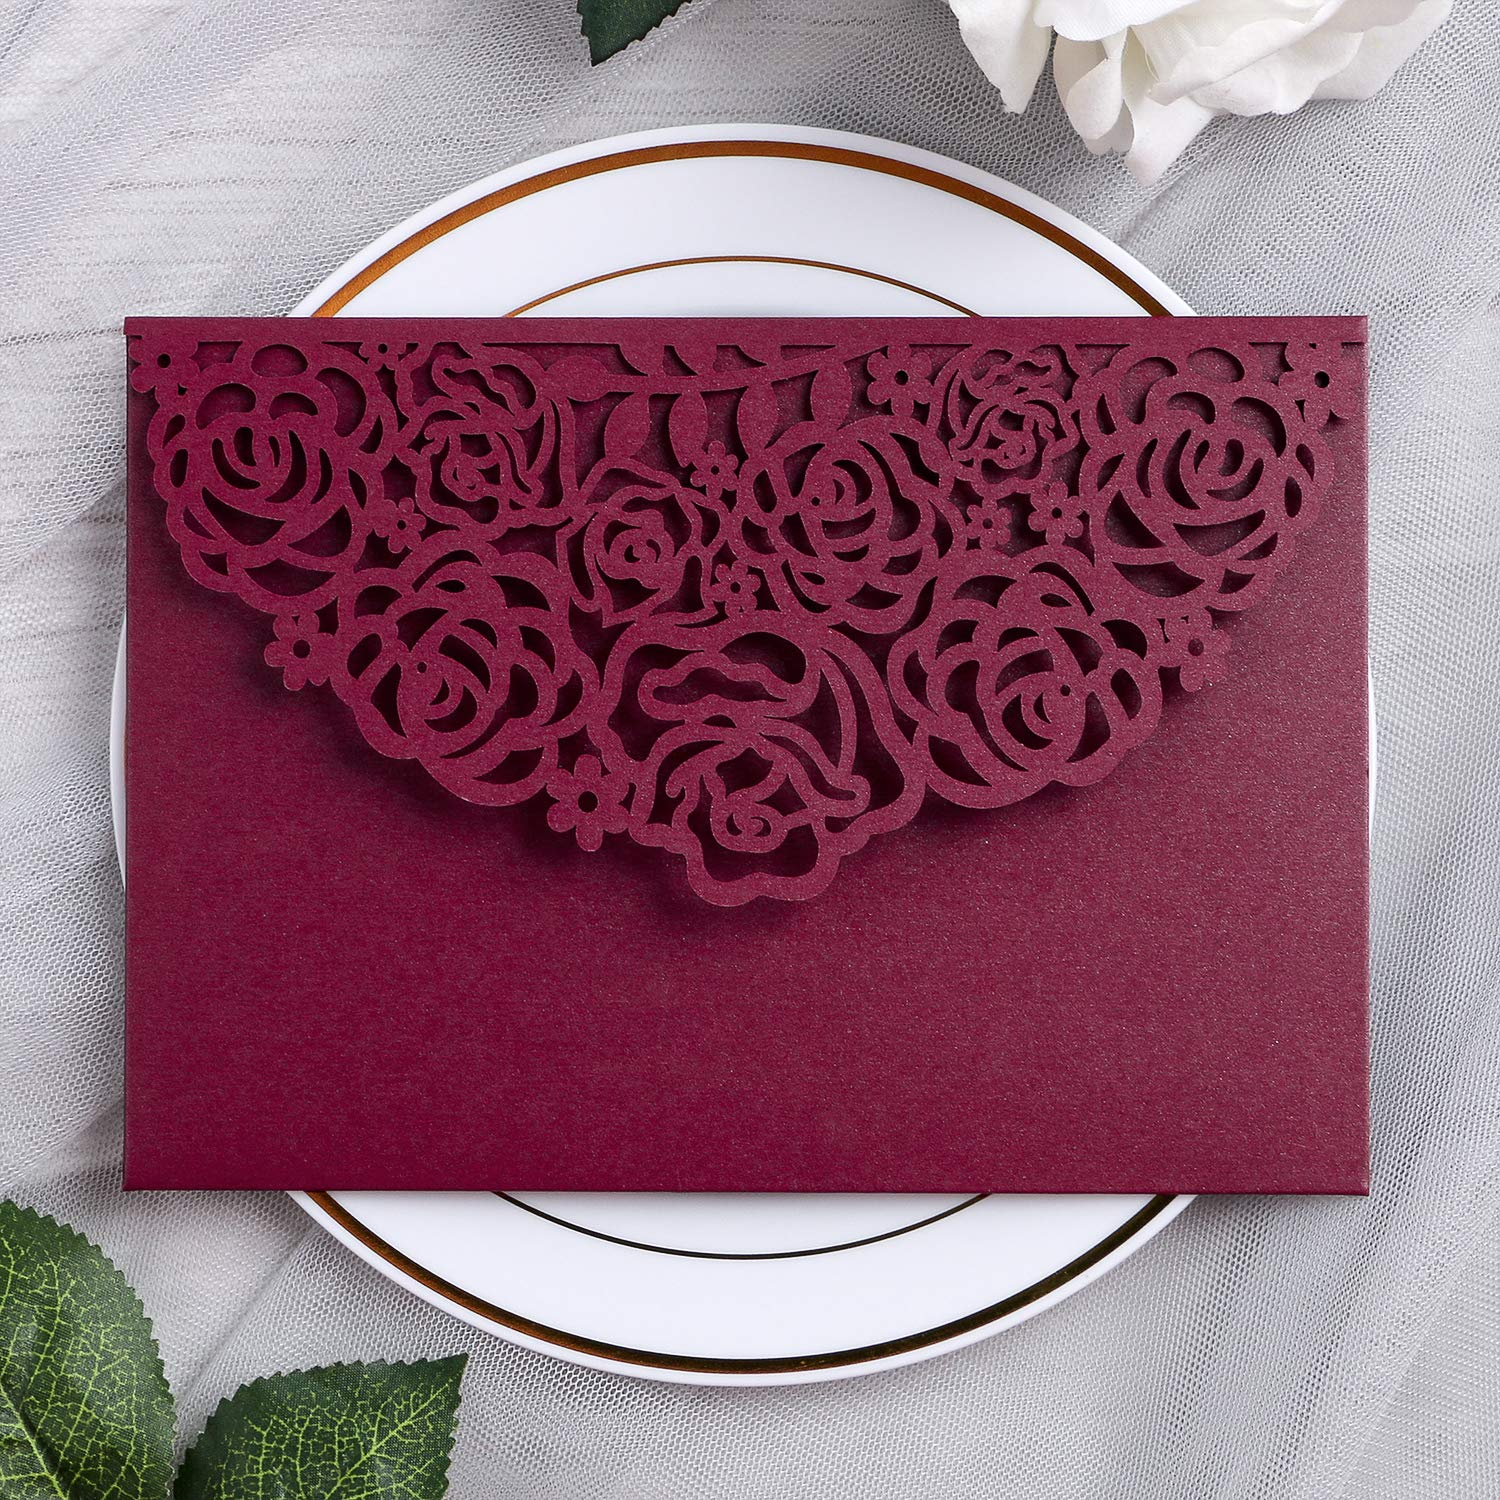 YIMIL 20 Pcs 5.12 x 7.21 inch Tri-fold Laser Cut Wedding Invitation Pocket for Wedding Quinceanera Bridal Shower Baby Shower Party Invite (Burgundy) by YIMIL